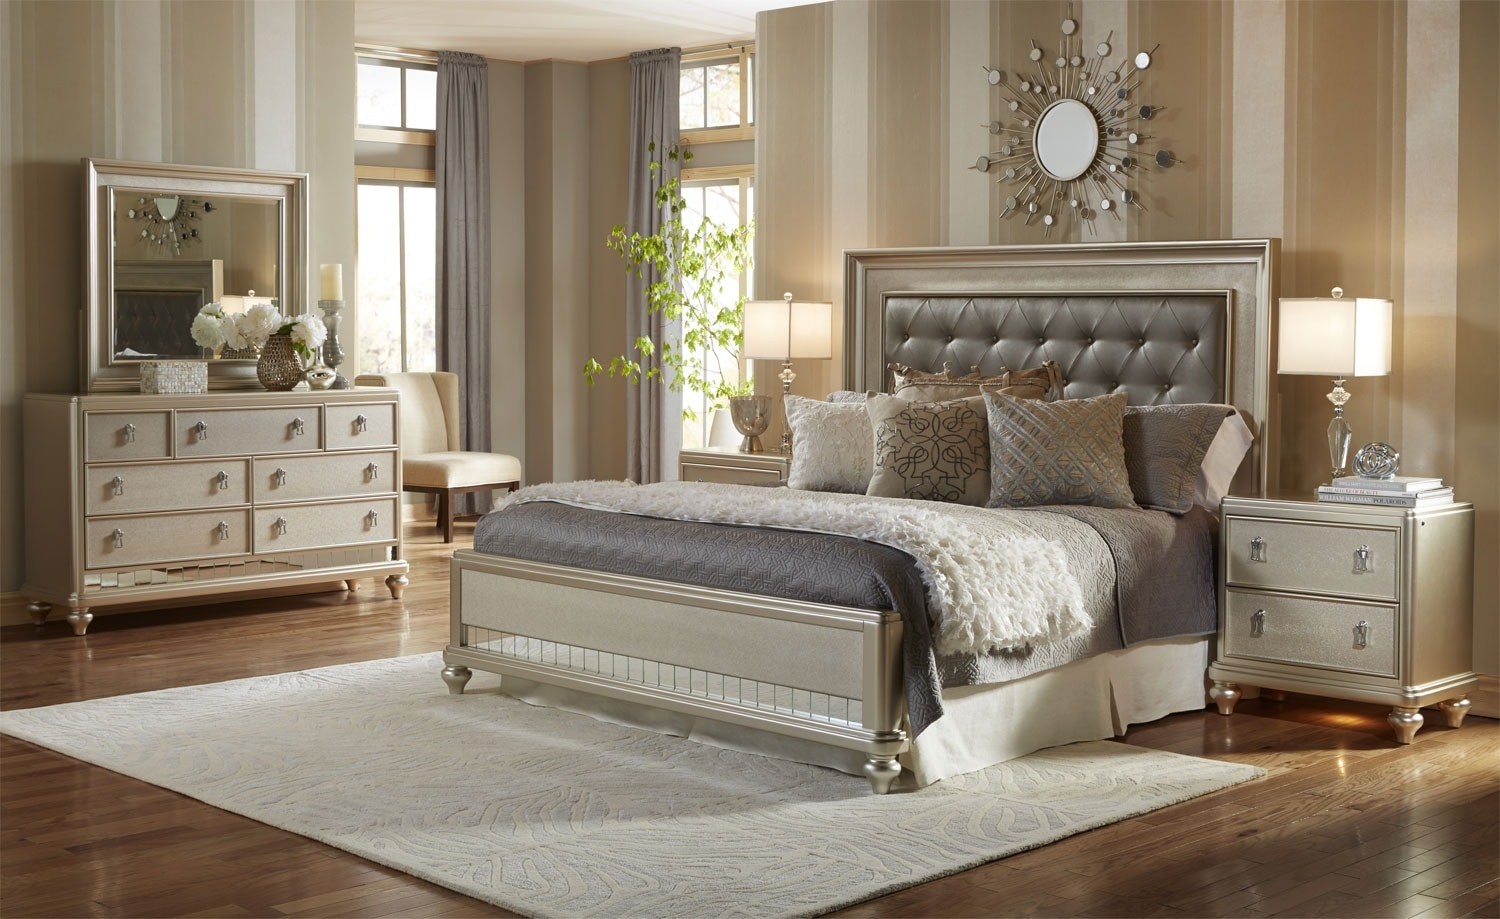 Bedroom Furniture - Diva 6-Piece Queen Bedroom Package